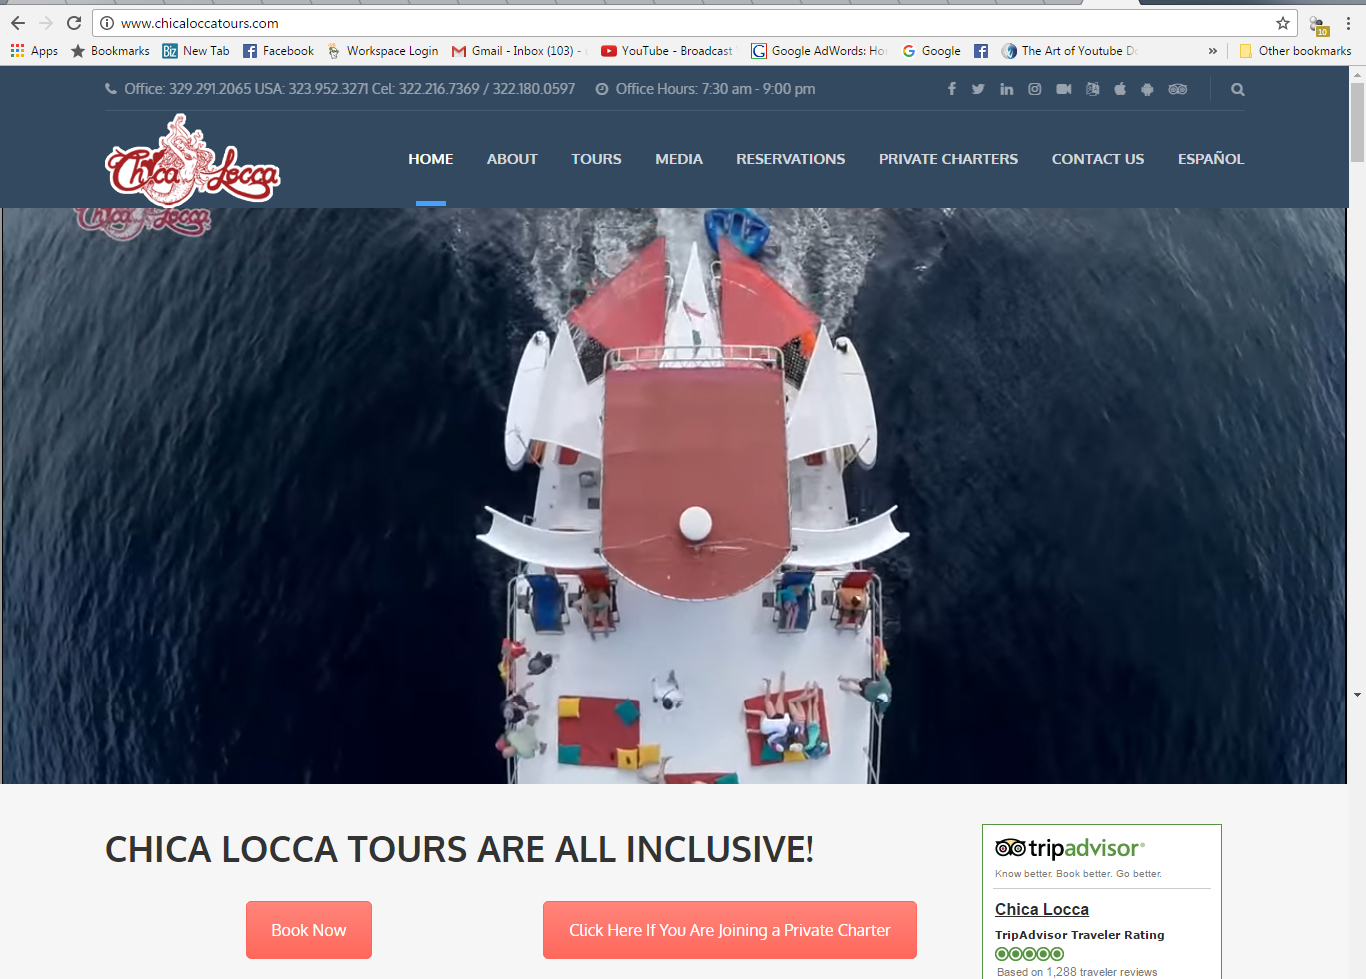 Chica Locca Tours Website Design